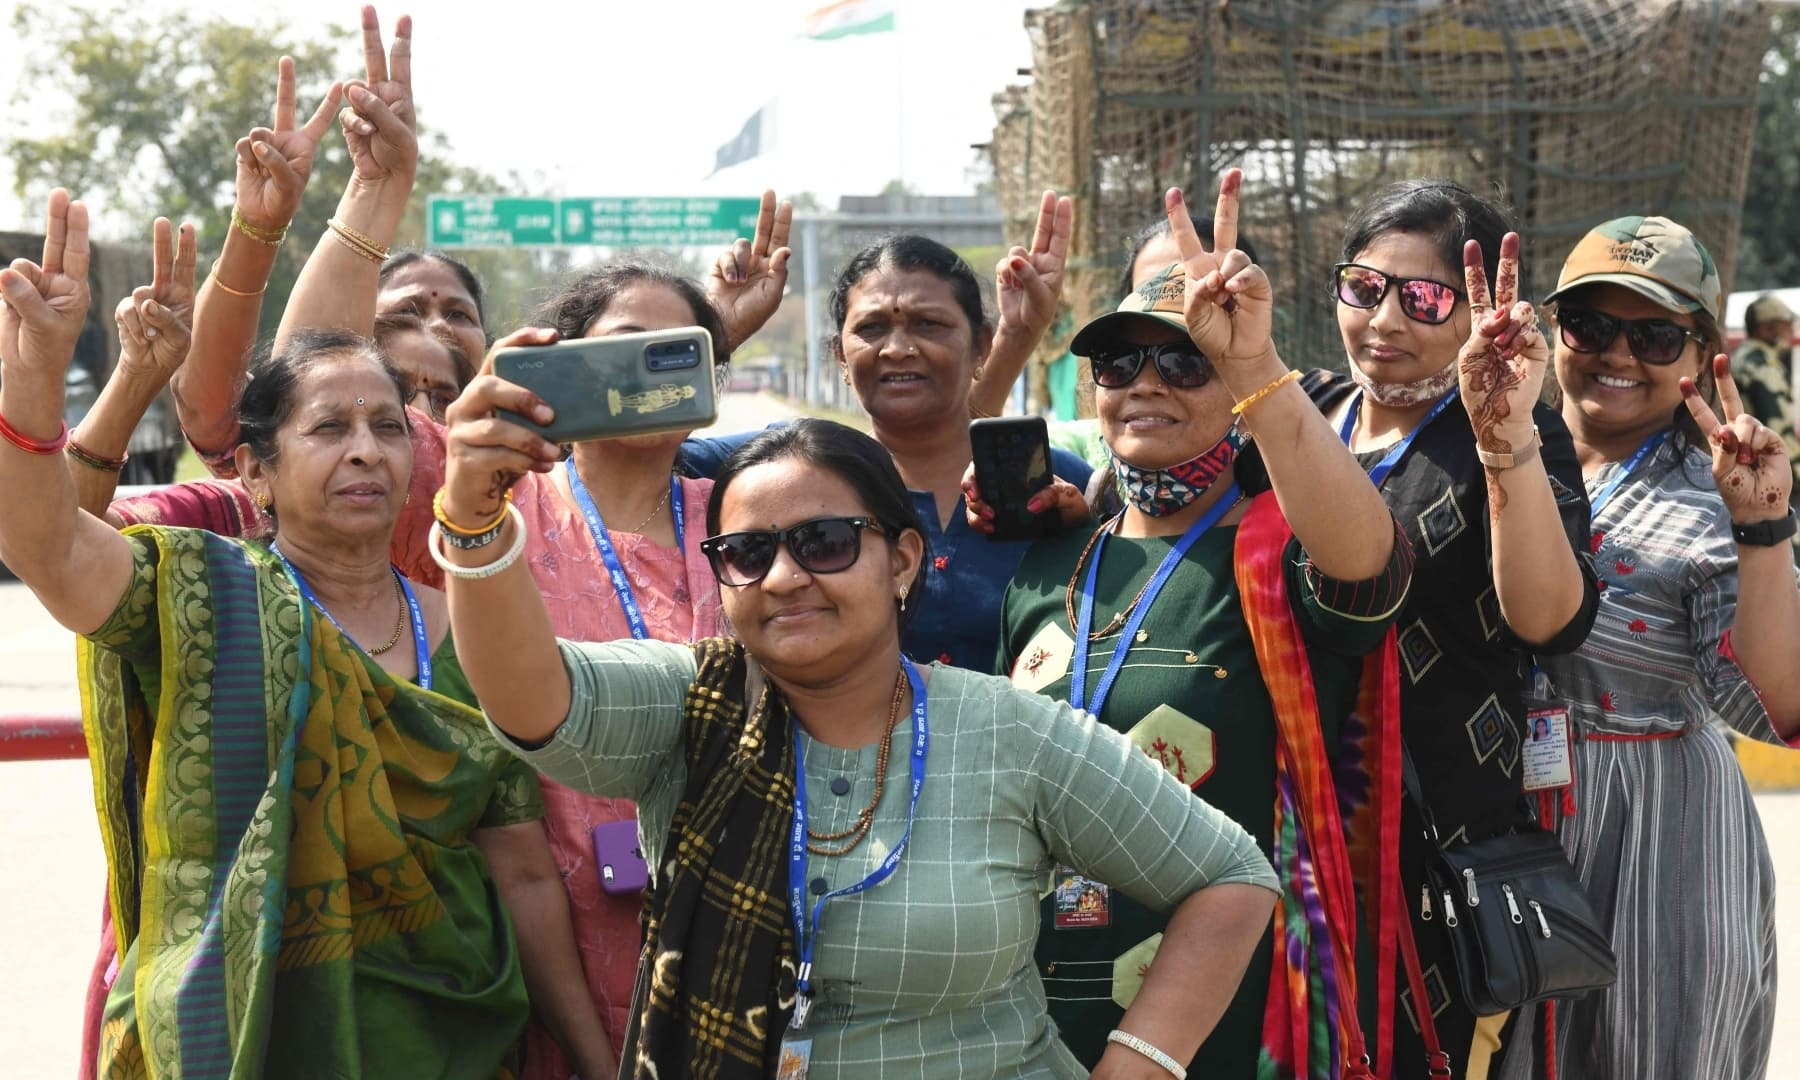 Tourists take selfies on the occasion of International Women's Day outside the entrance of the India-Pakistan Wagah Border post, about 35km from Amritsar on March 8. — AFP